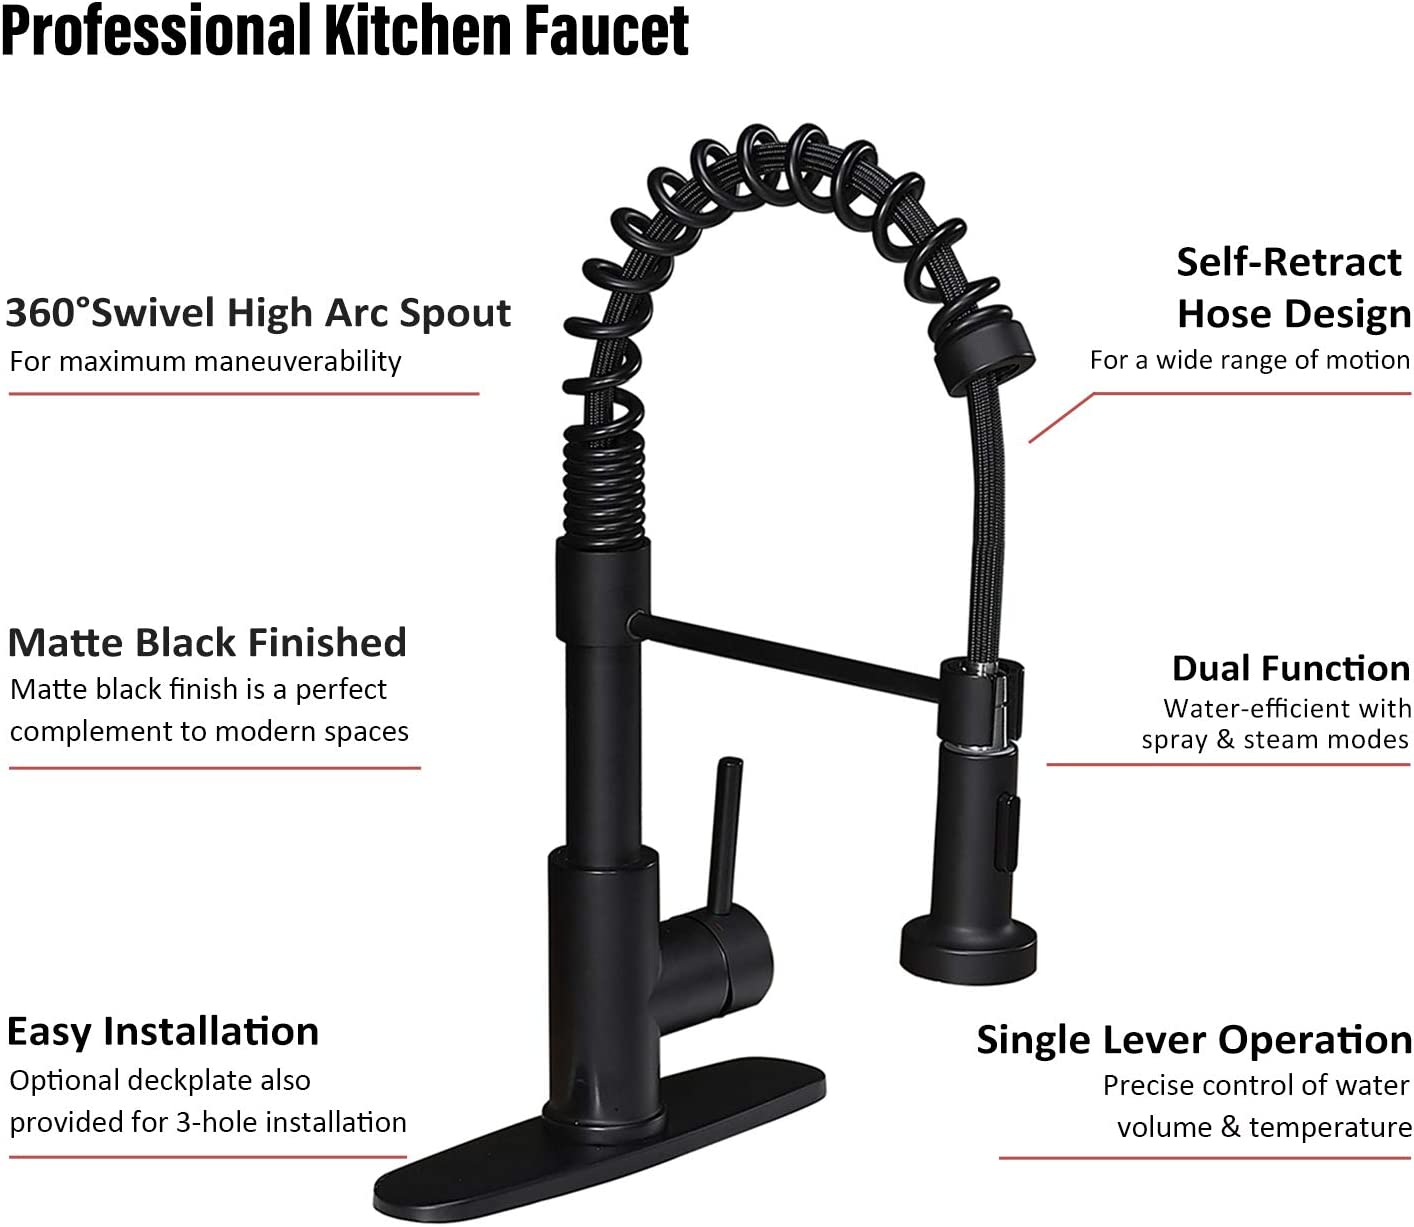 KINFAUCETS Commercial Solid Brass Single Handle Brushe Nickel Pull Down Sprayer Spring Kitchen Faucet with Sprayer 1 Or 3 Hole Kitchen Sink Faucet for Farmhouse Rv Camper Laundry Utility Bar Sinks